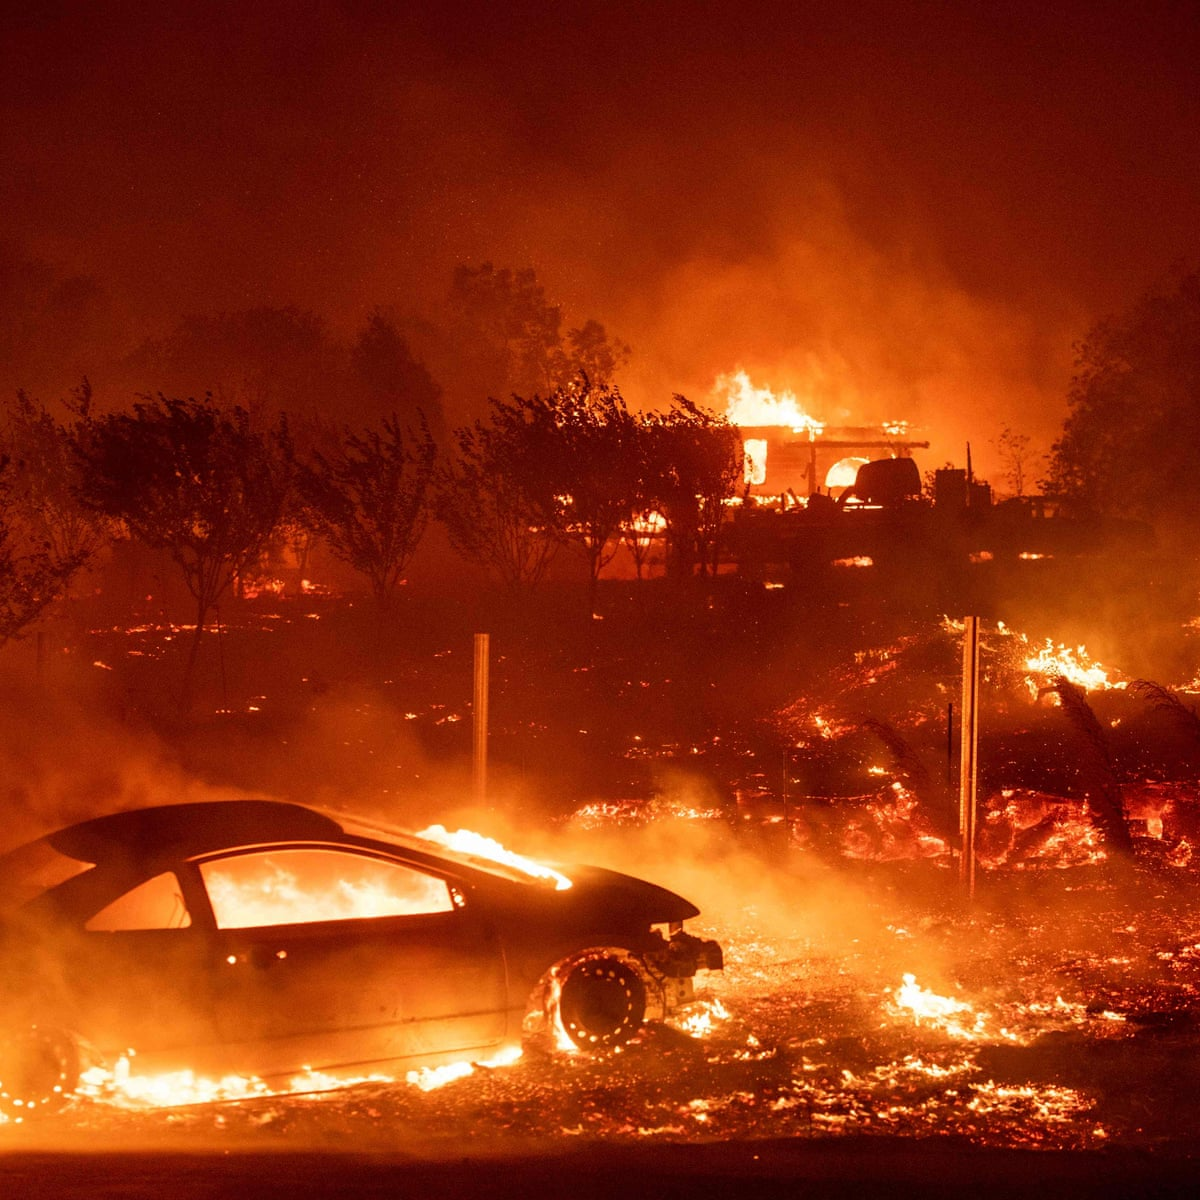 Frightening Footage Shows Wildfire Obliterating Forest near Valencia